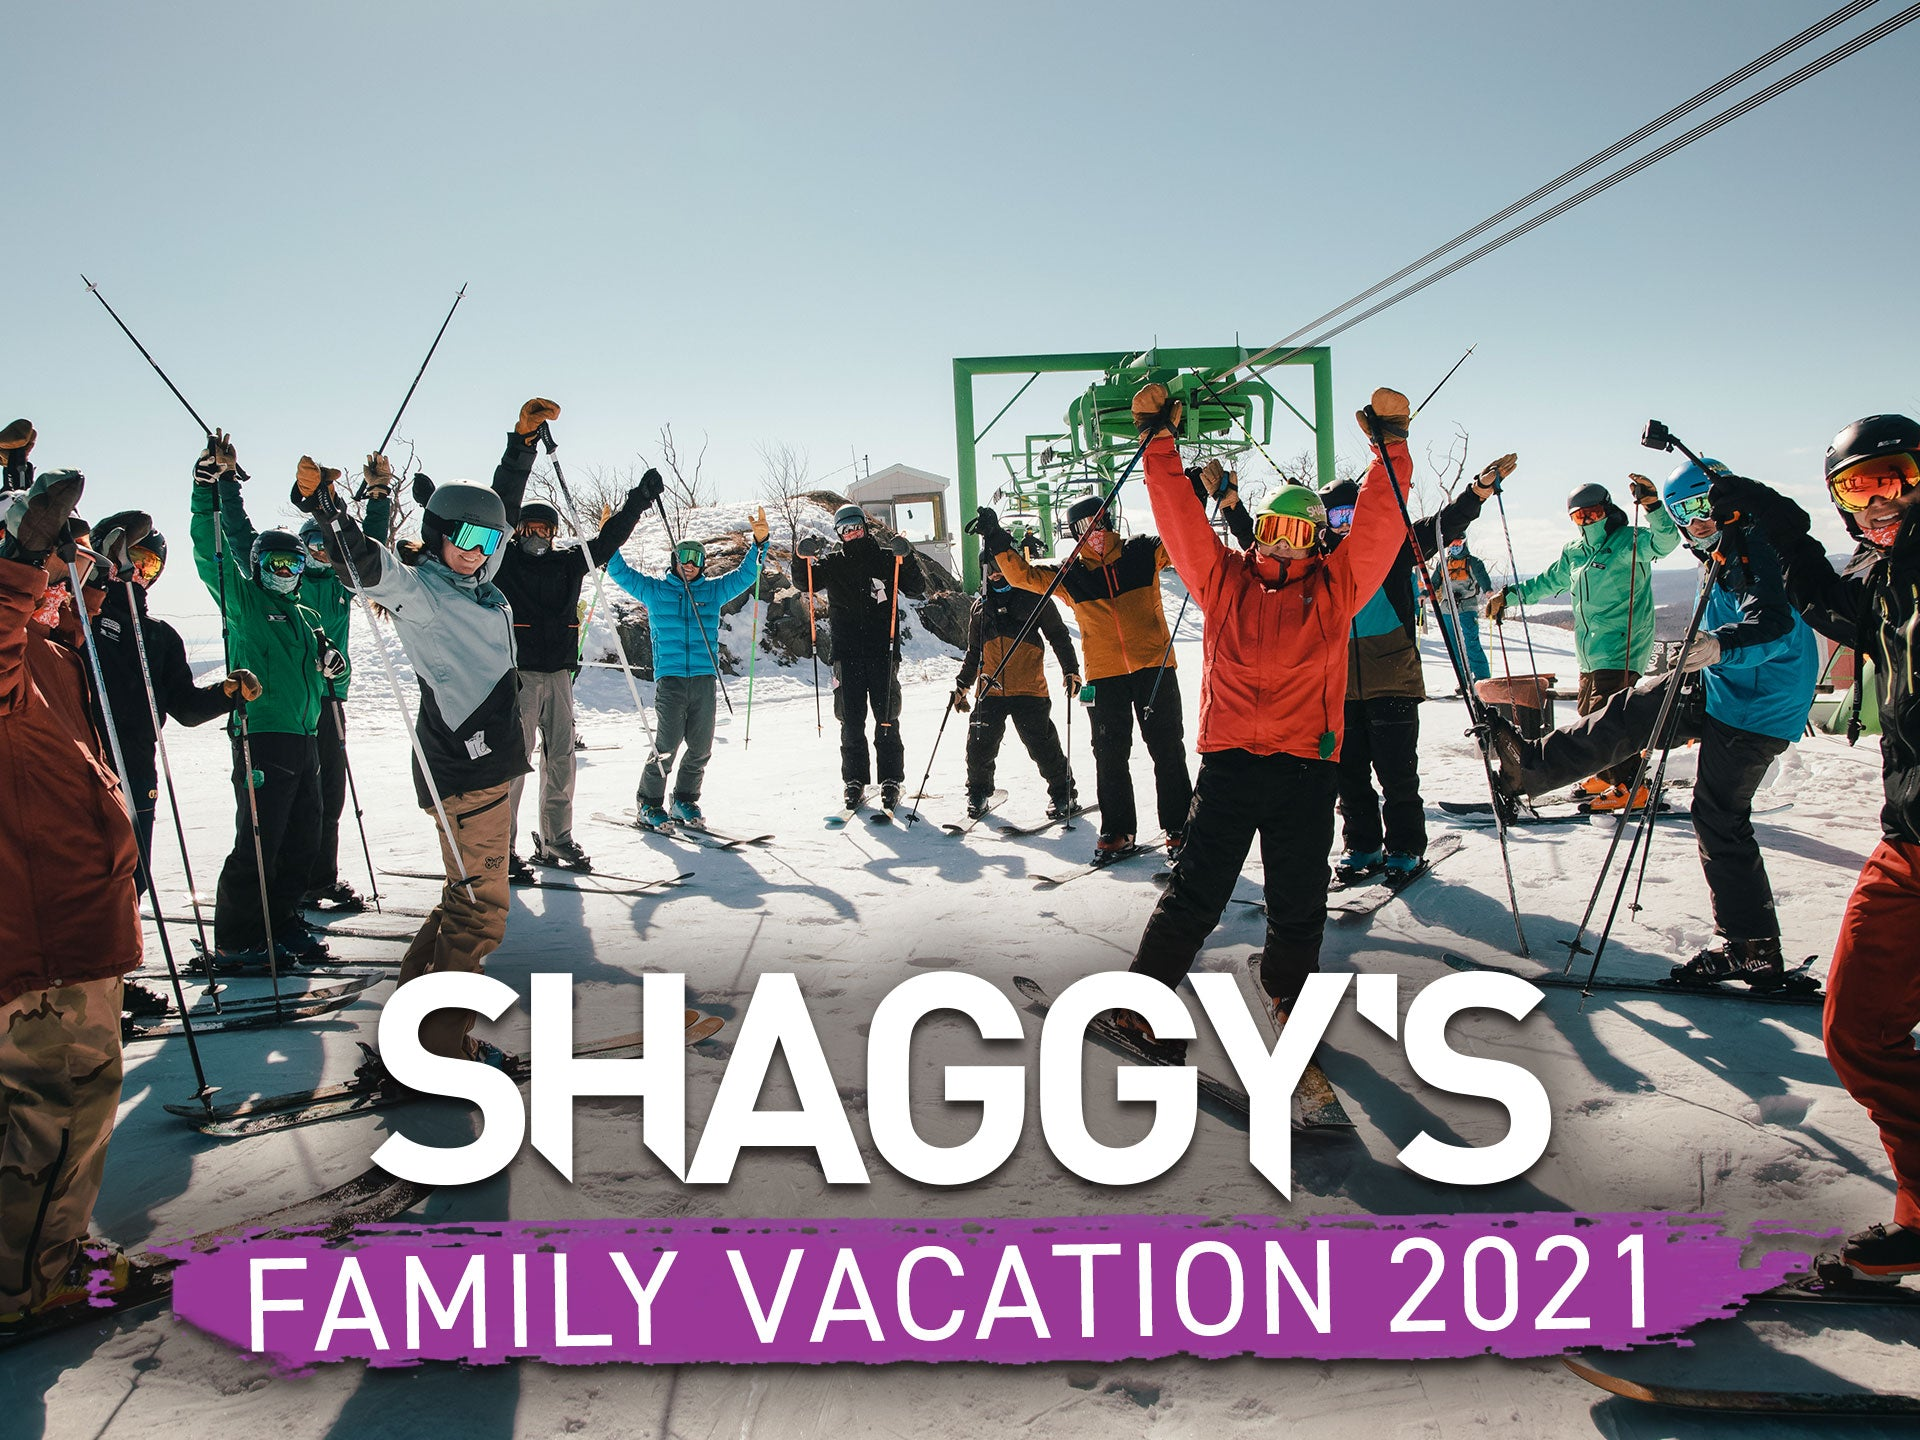 Video: Shaggy's Family Vacation at Mount Bohemia 2021